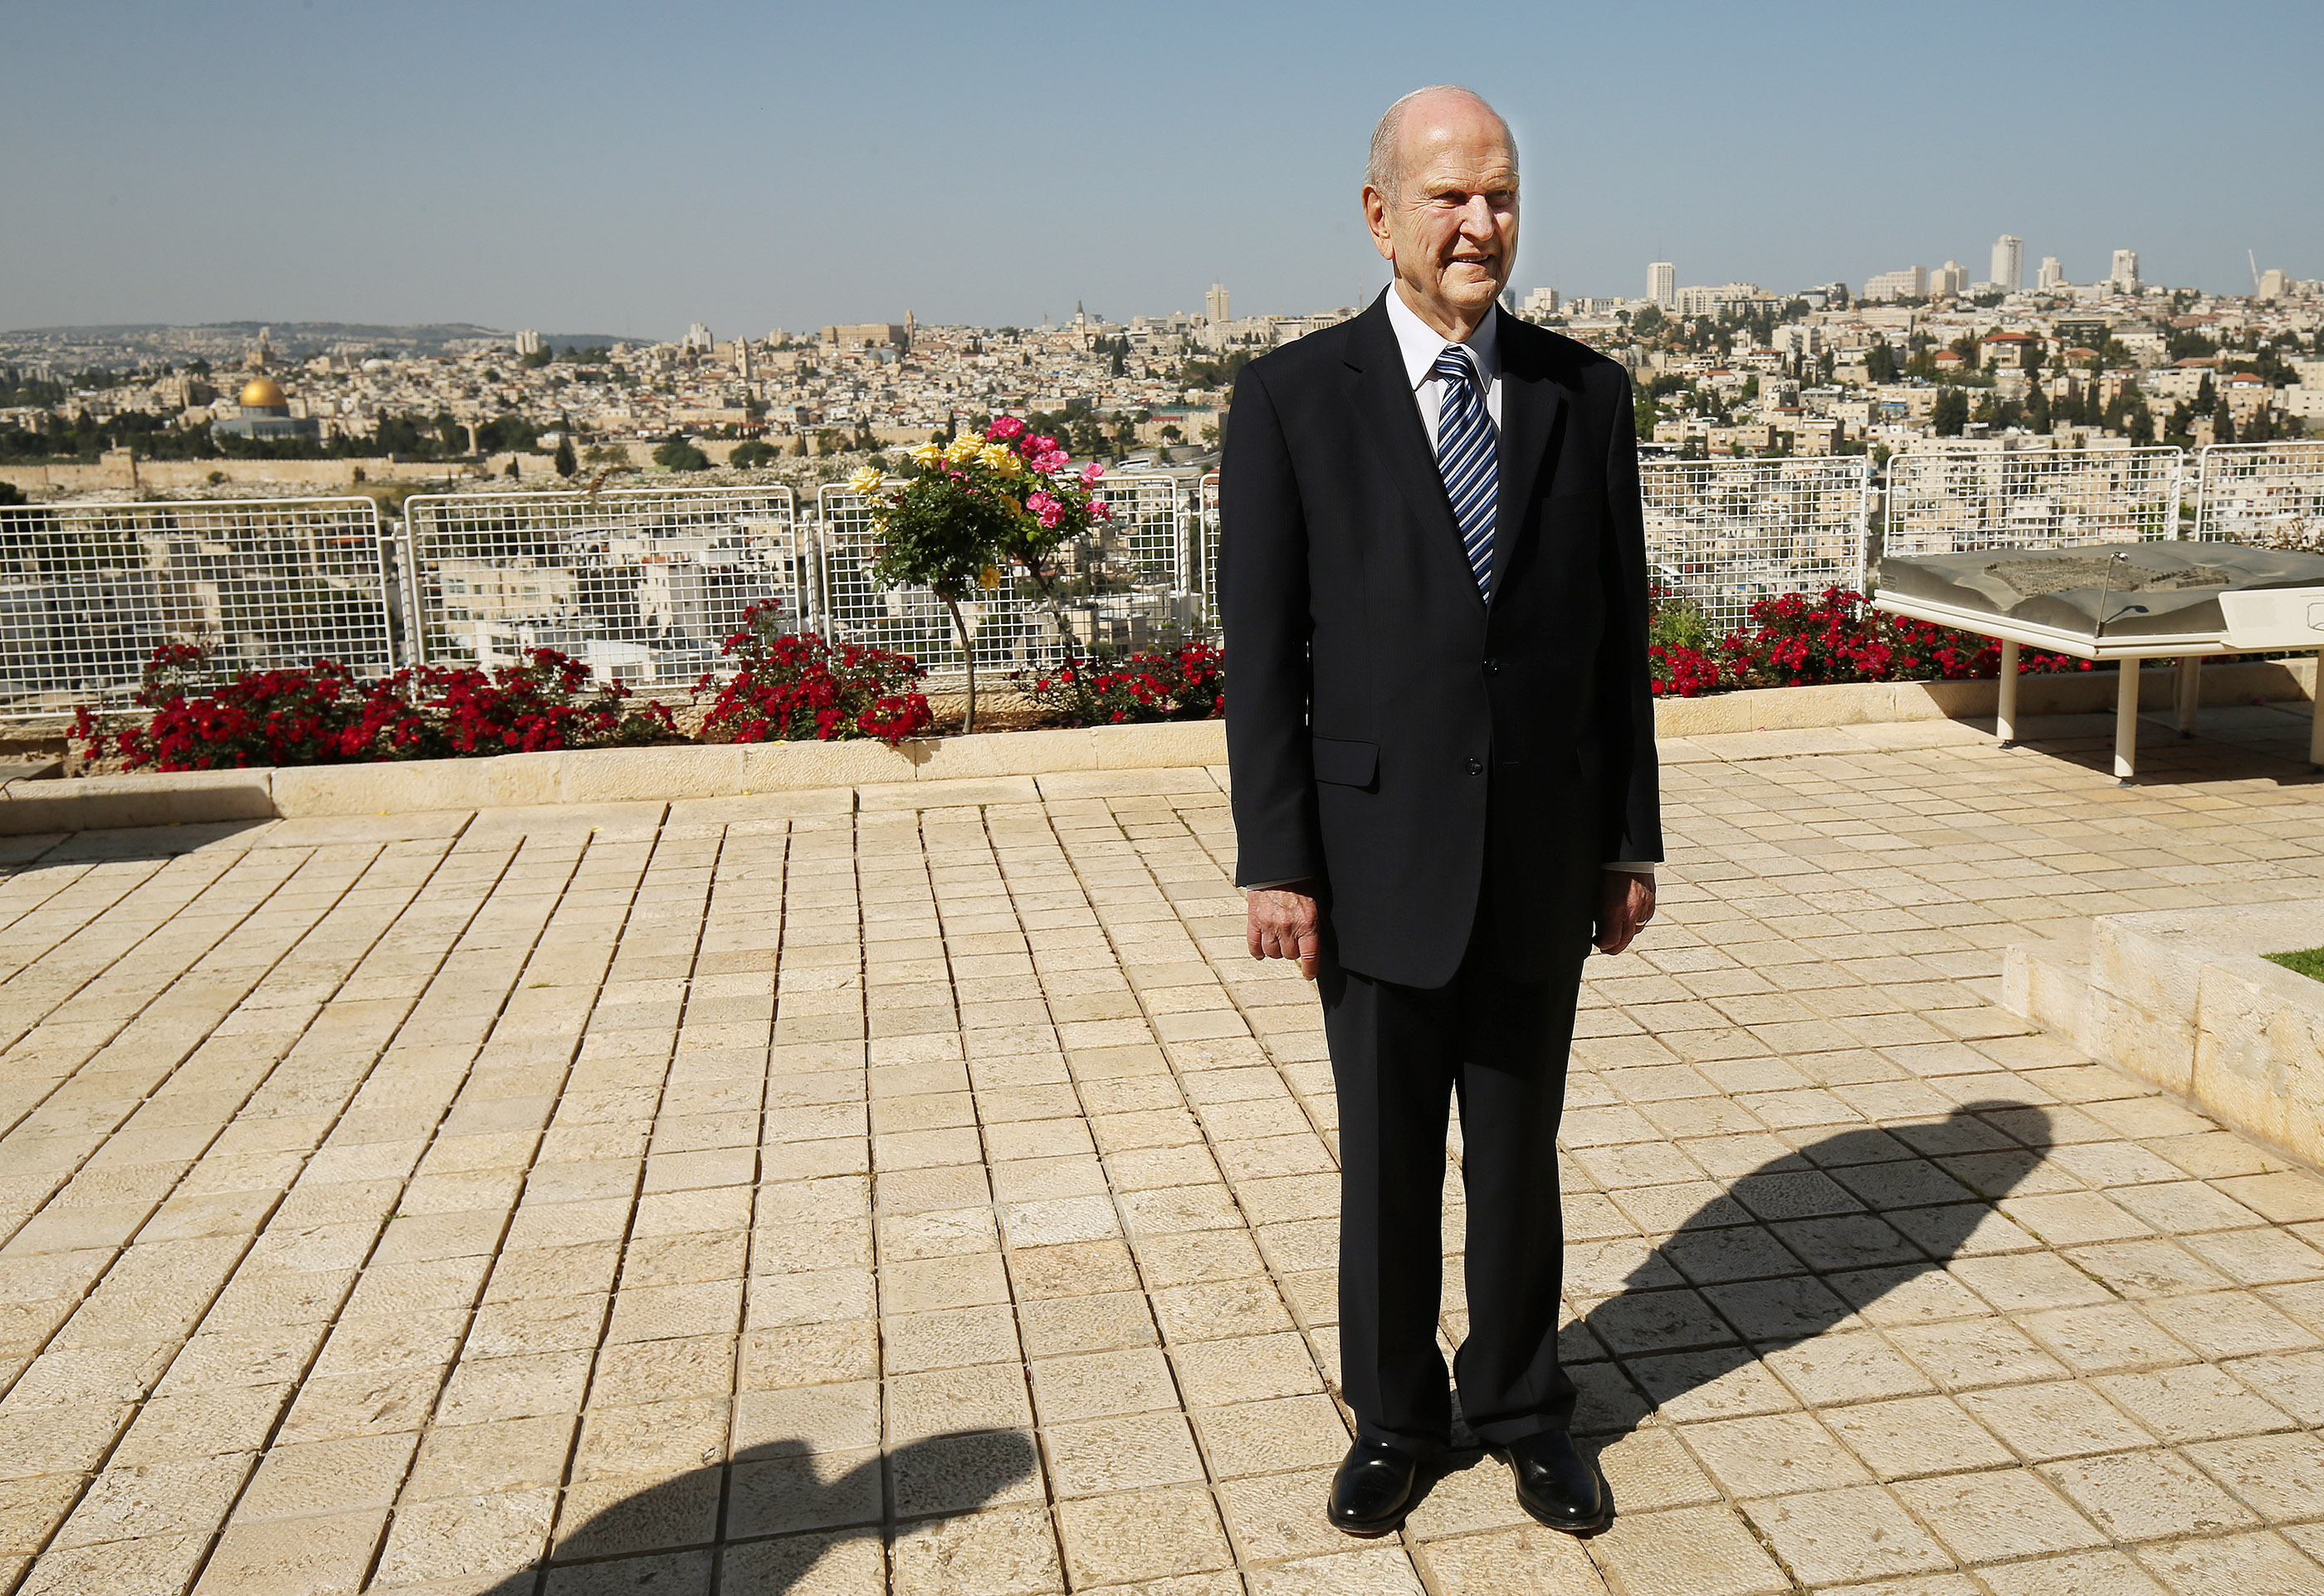 President Russell M. Nelson looks over the grounds at the BYU Jerusalem Center in Jerusalem on Saturday, April 14, 2018.